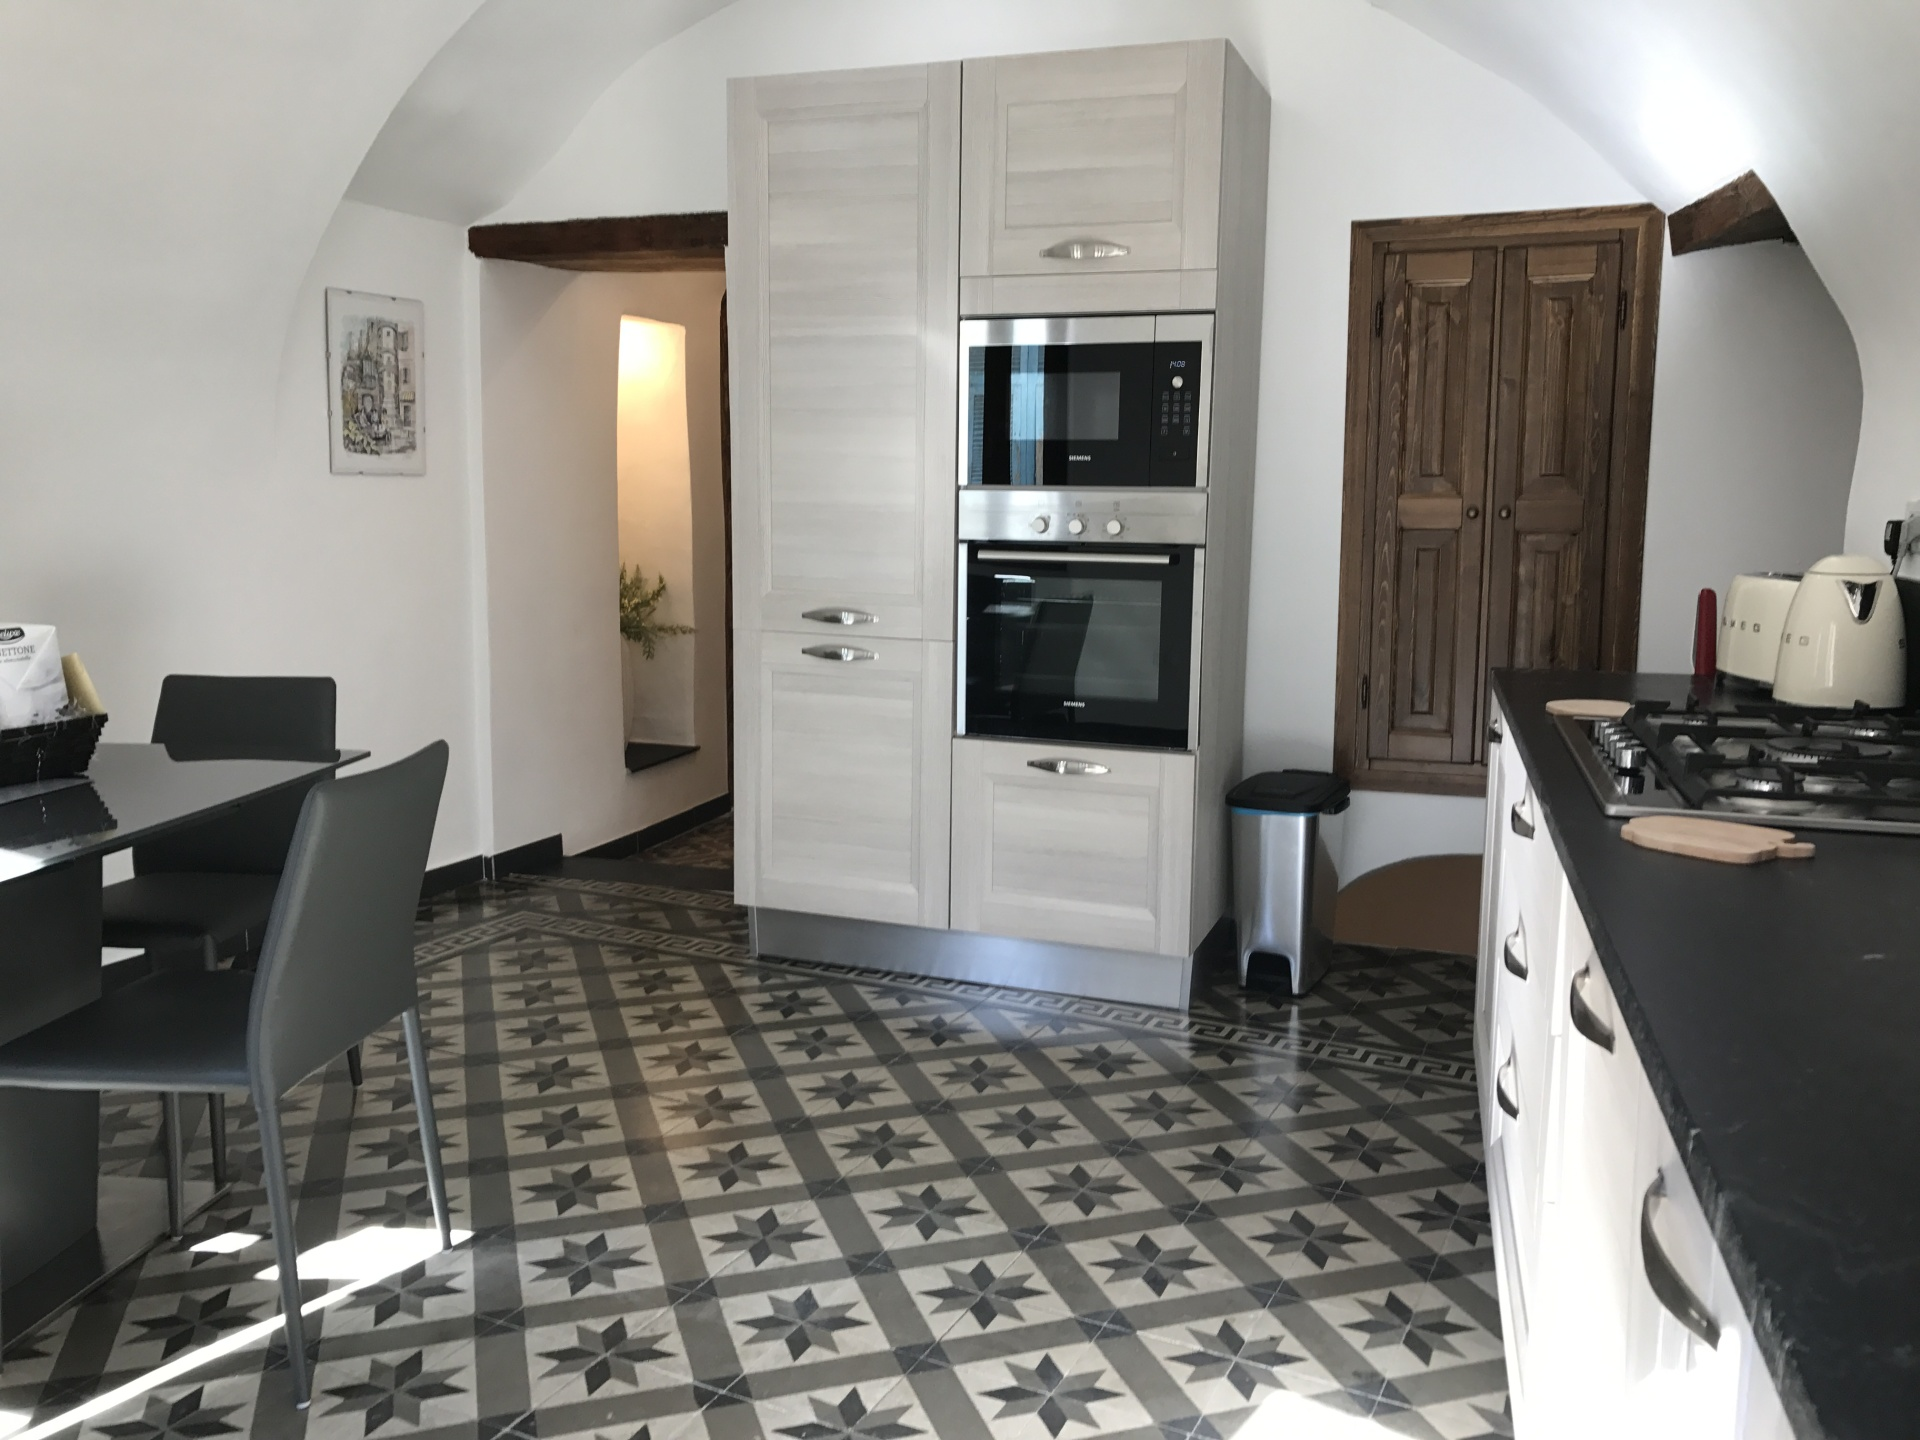 Medieval townhouse in Pigna, Liguria - Breakfast Kitchen